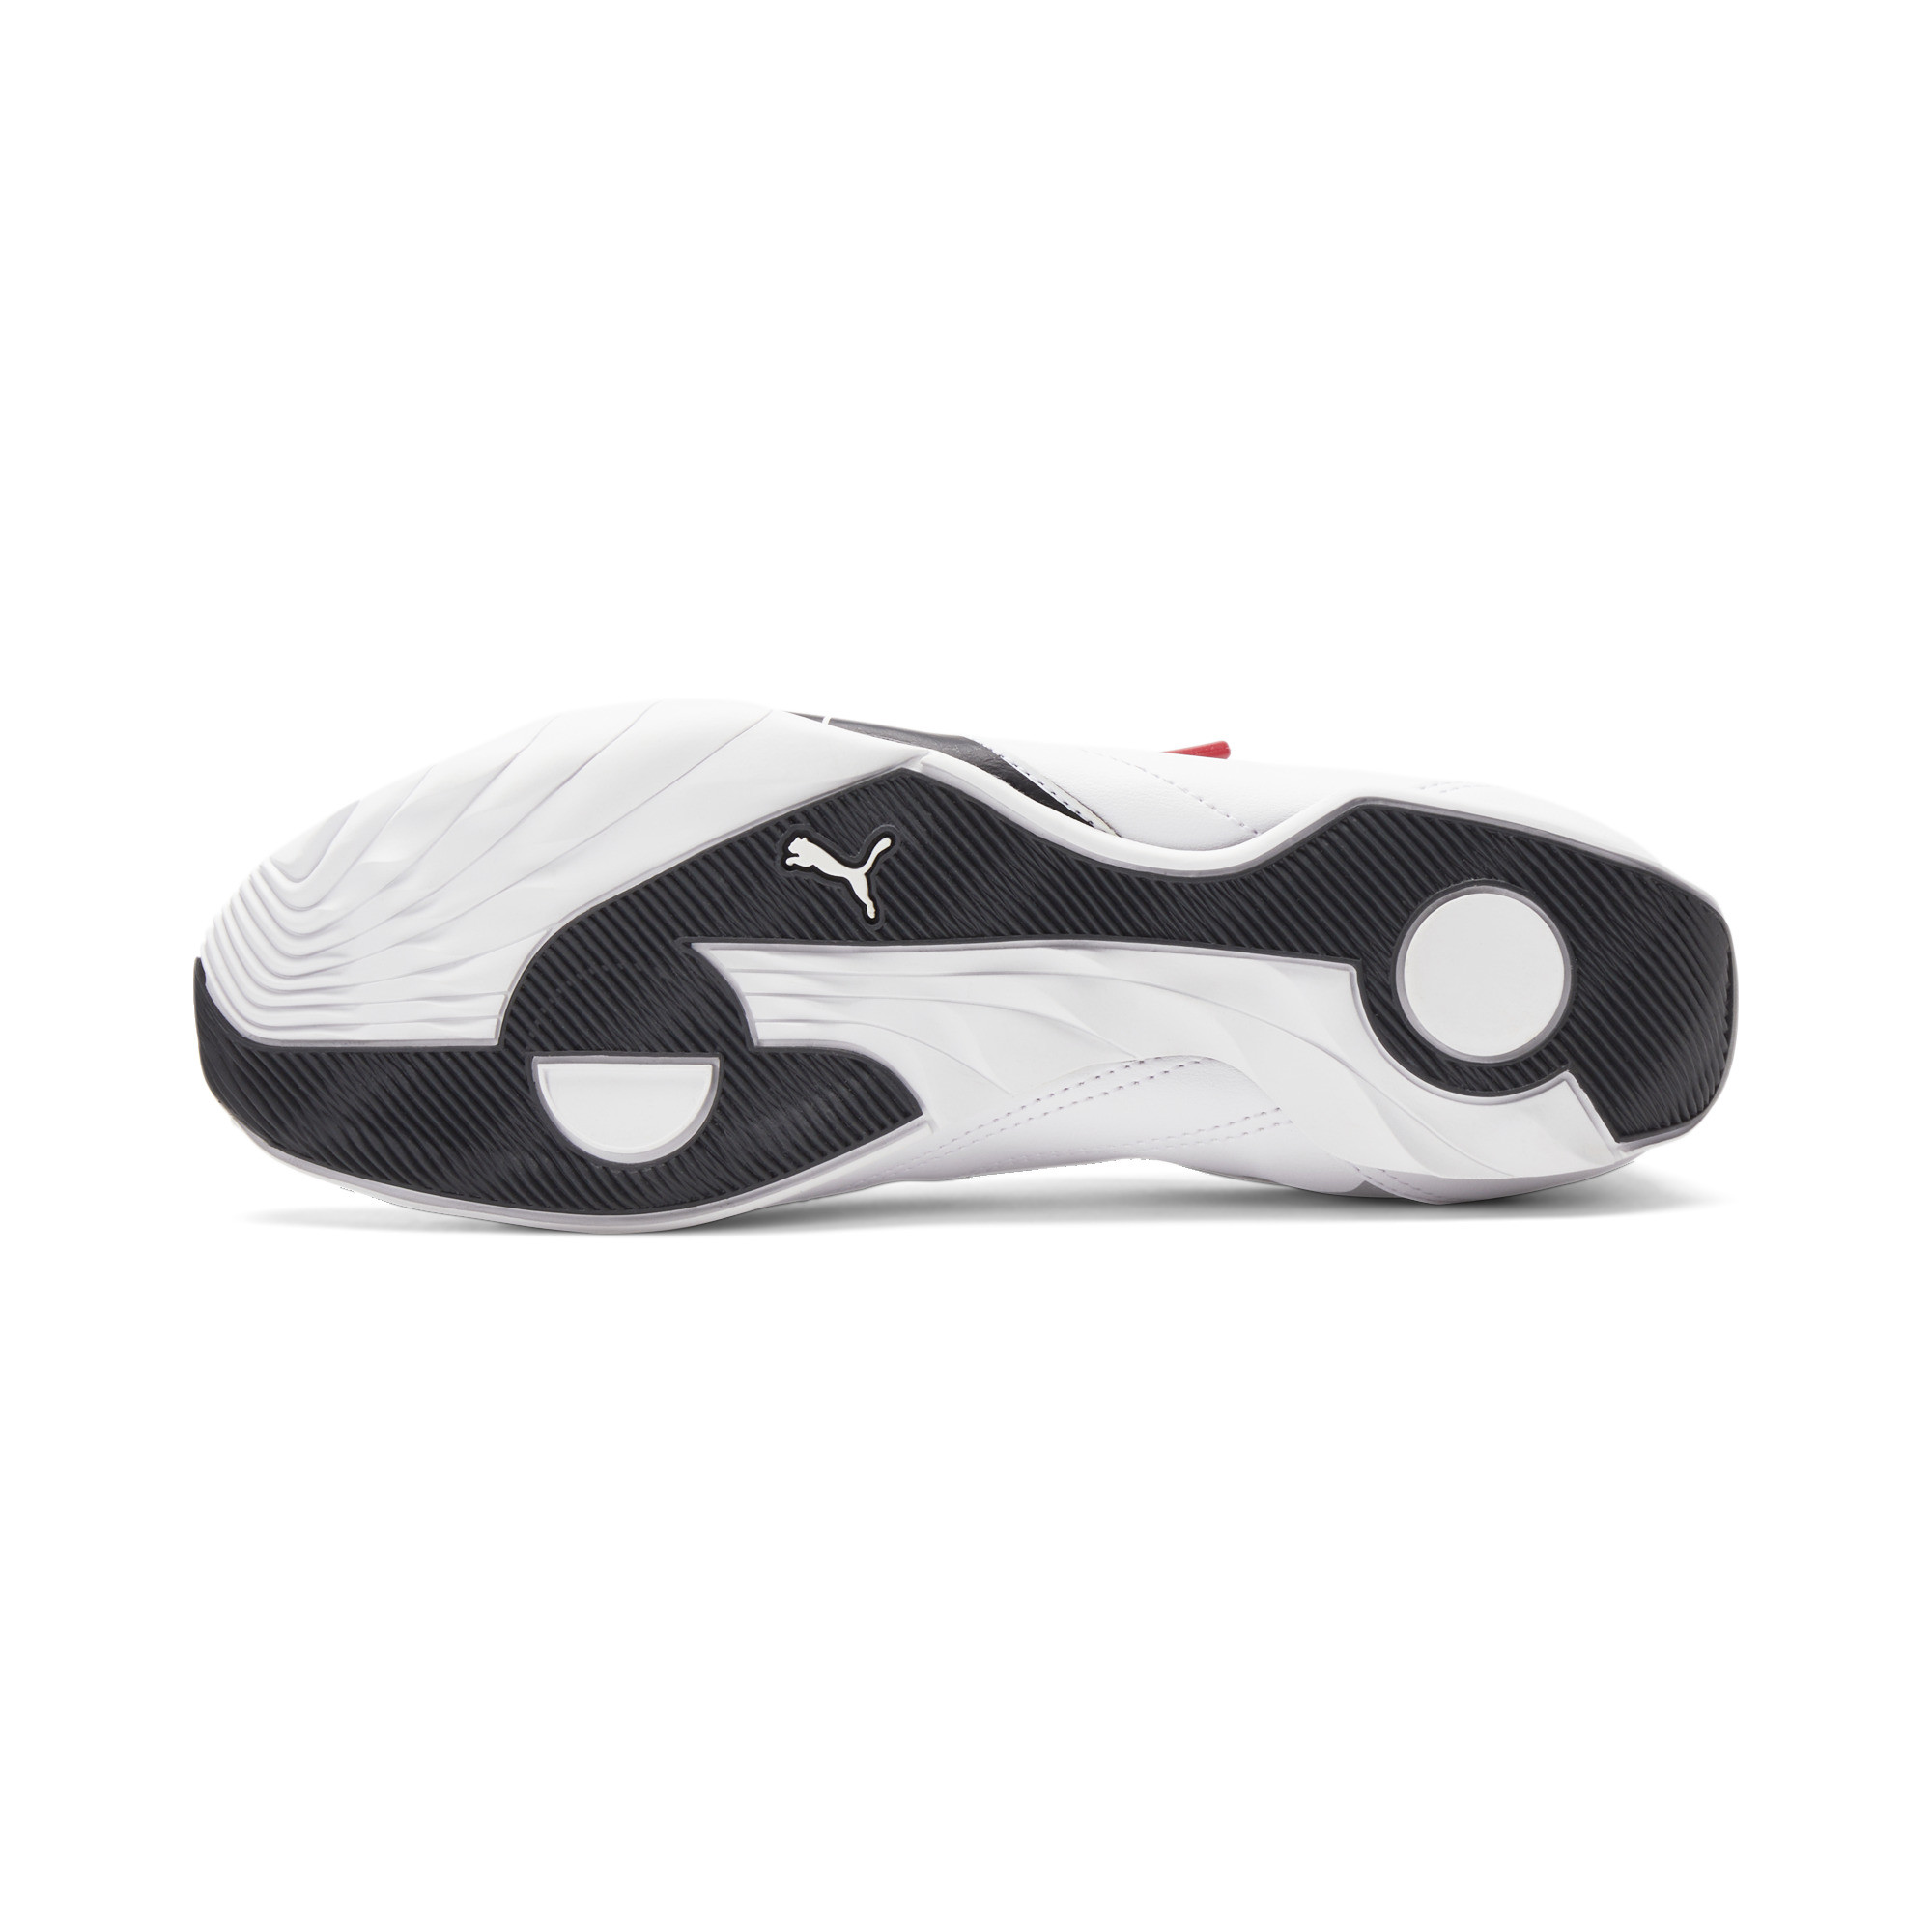 PUMA-Redon-Move-Shoes-Men-Shoe-Sport-Shoe thumbnail 11